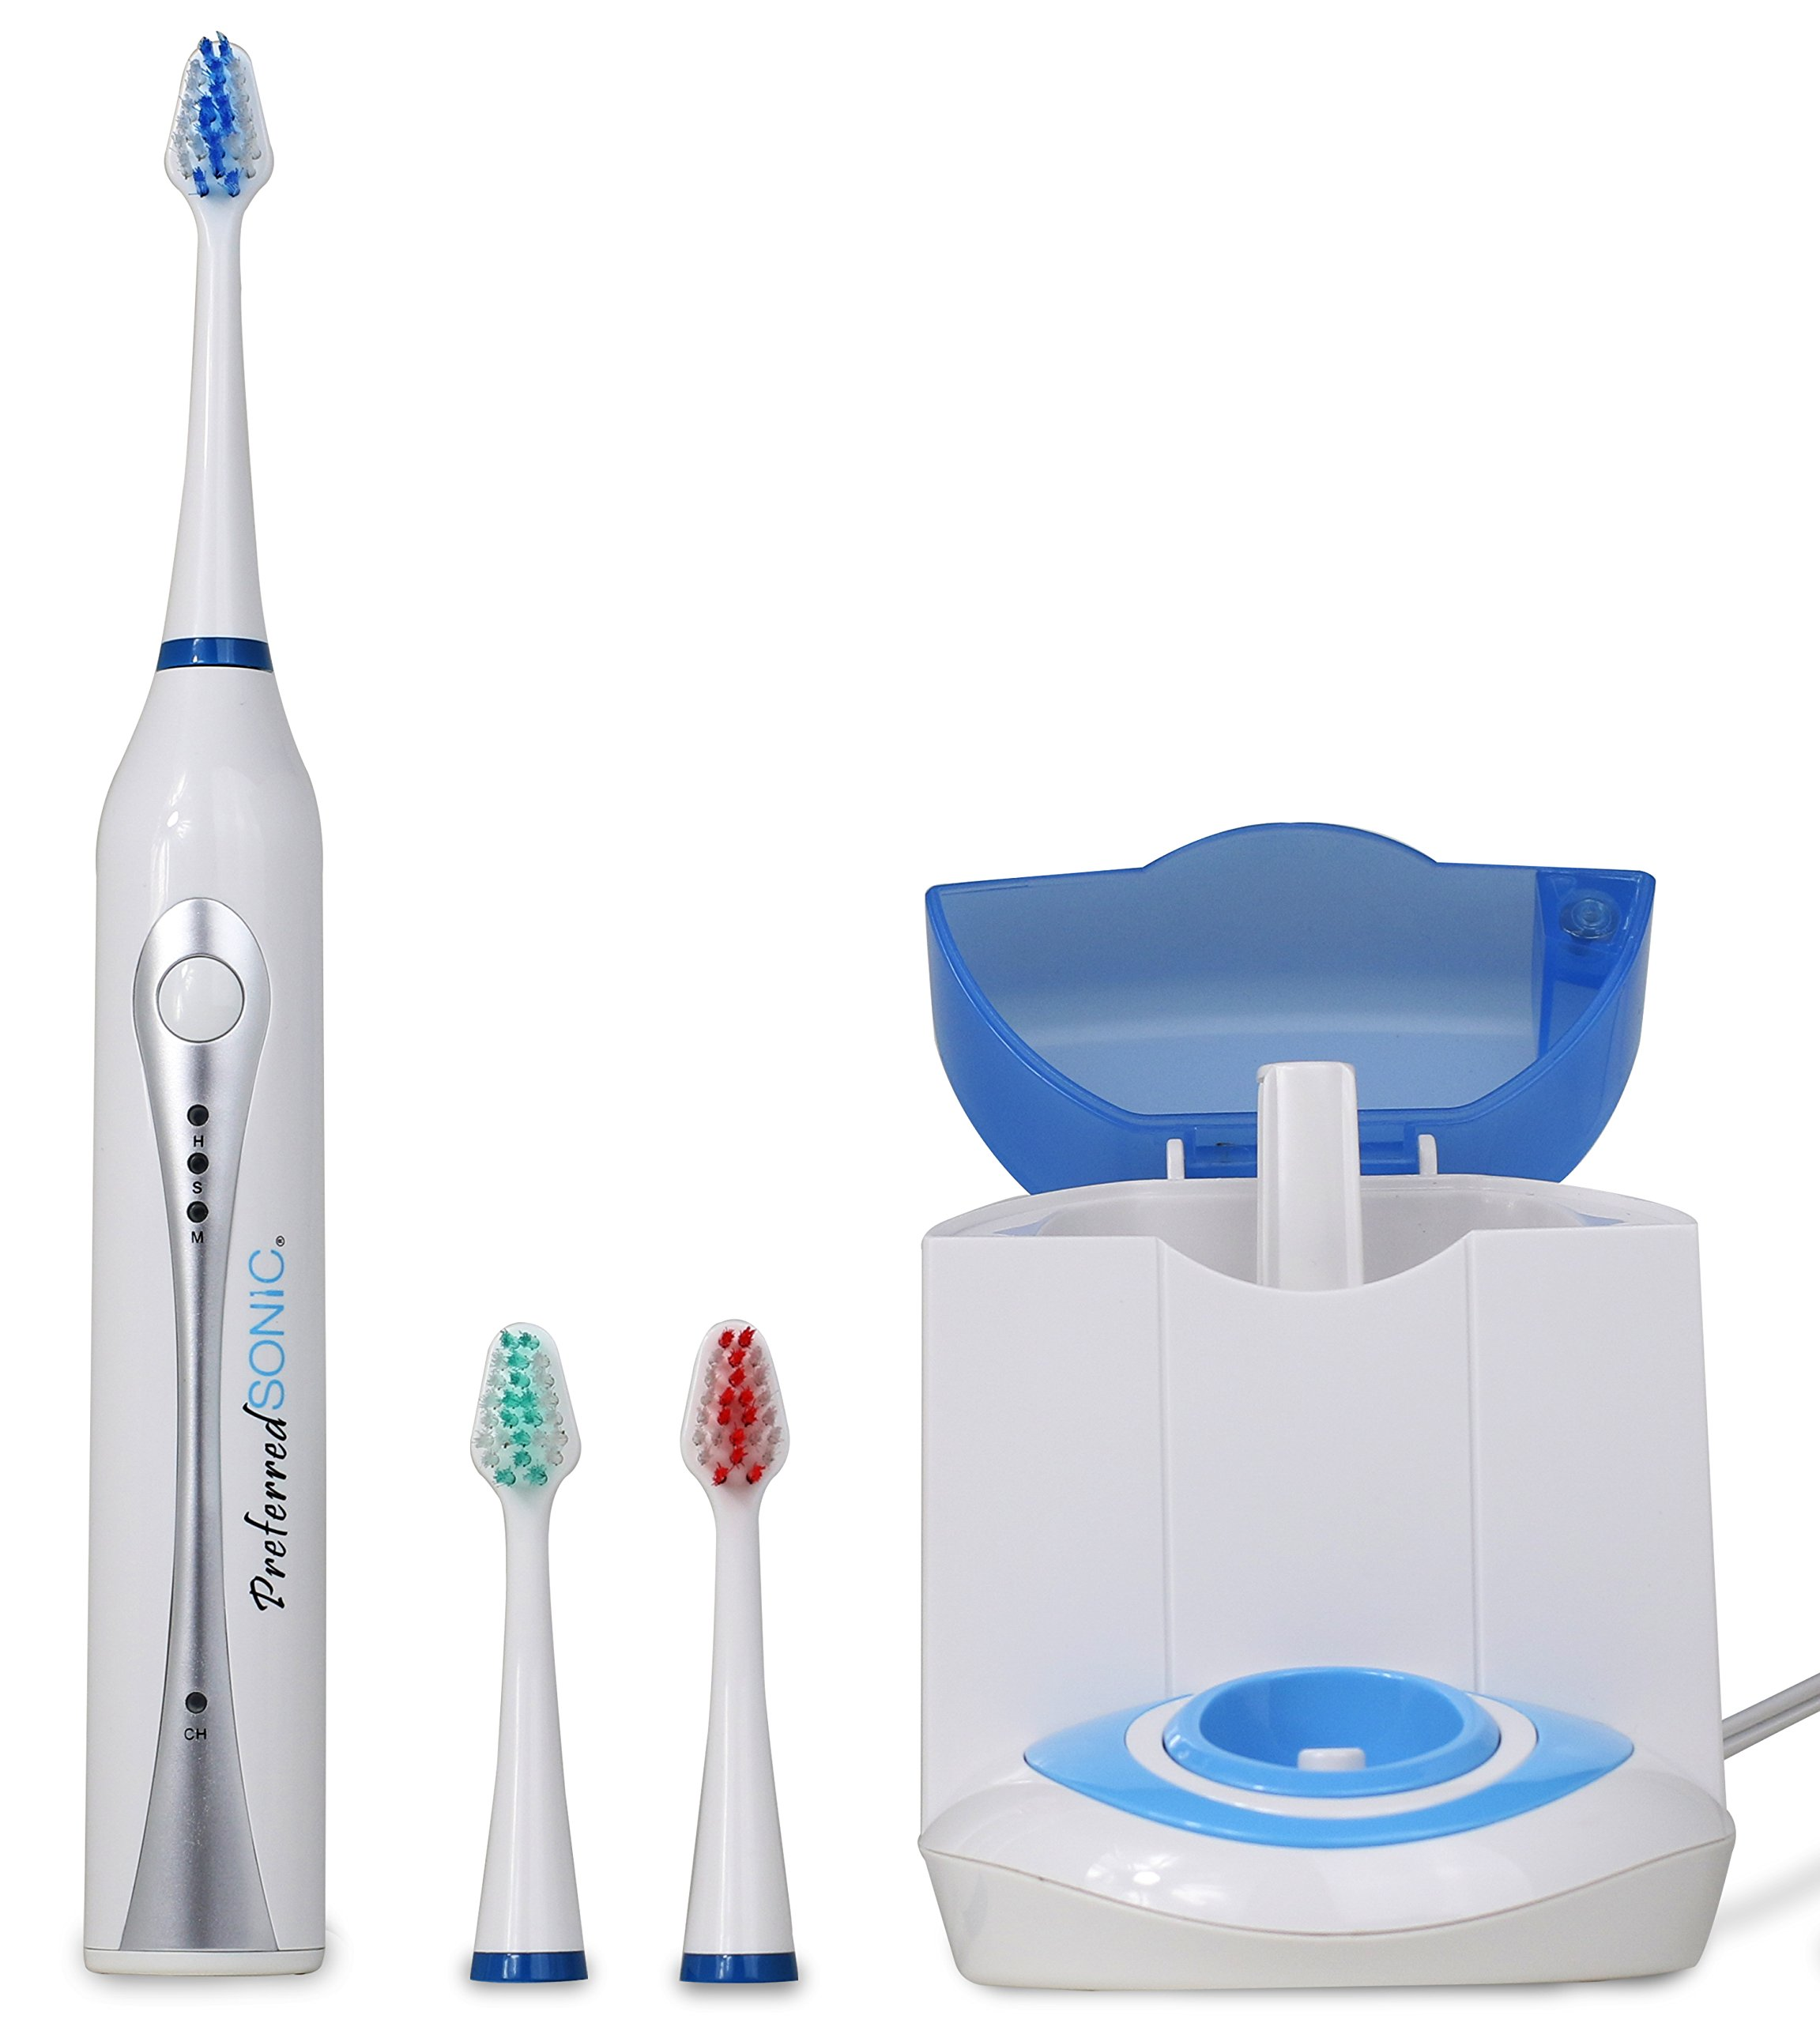 Amazon.com: Sonic Electric Toothbrush with UV Sanitizer: Industrial &  Scientific